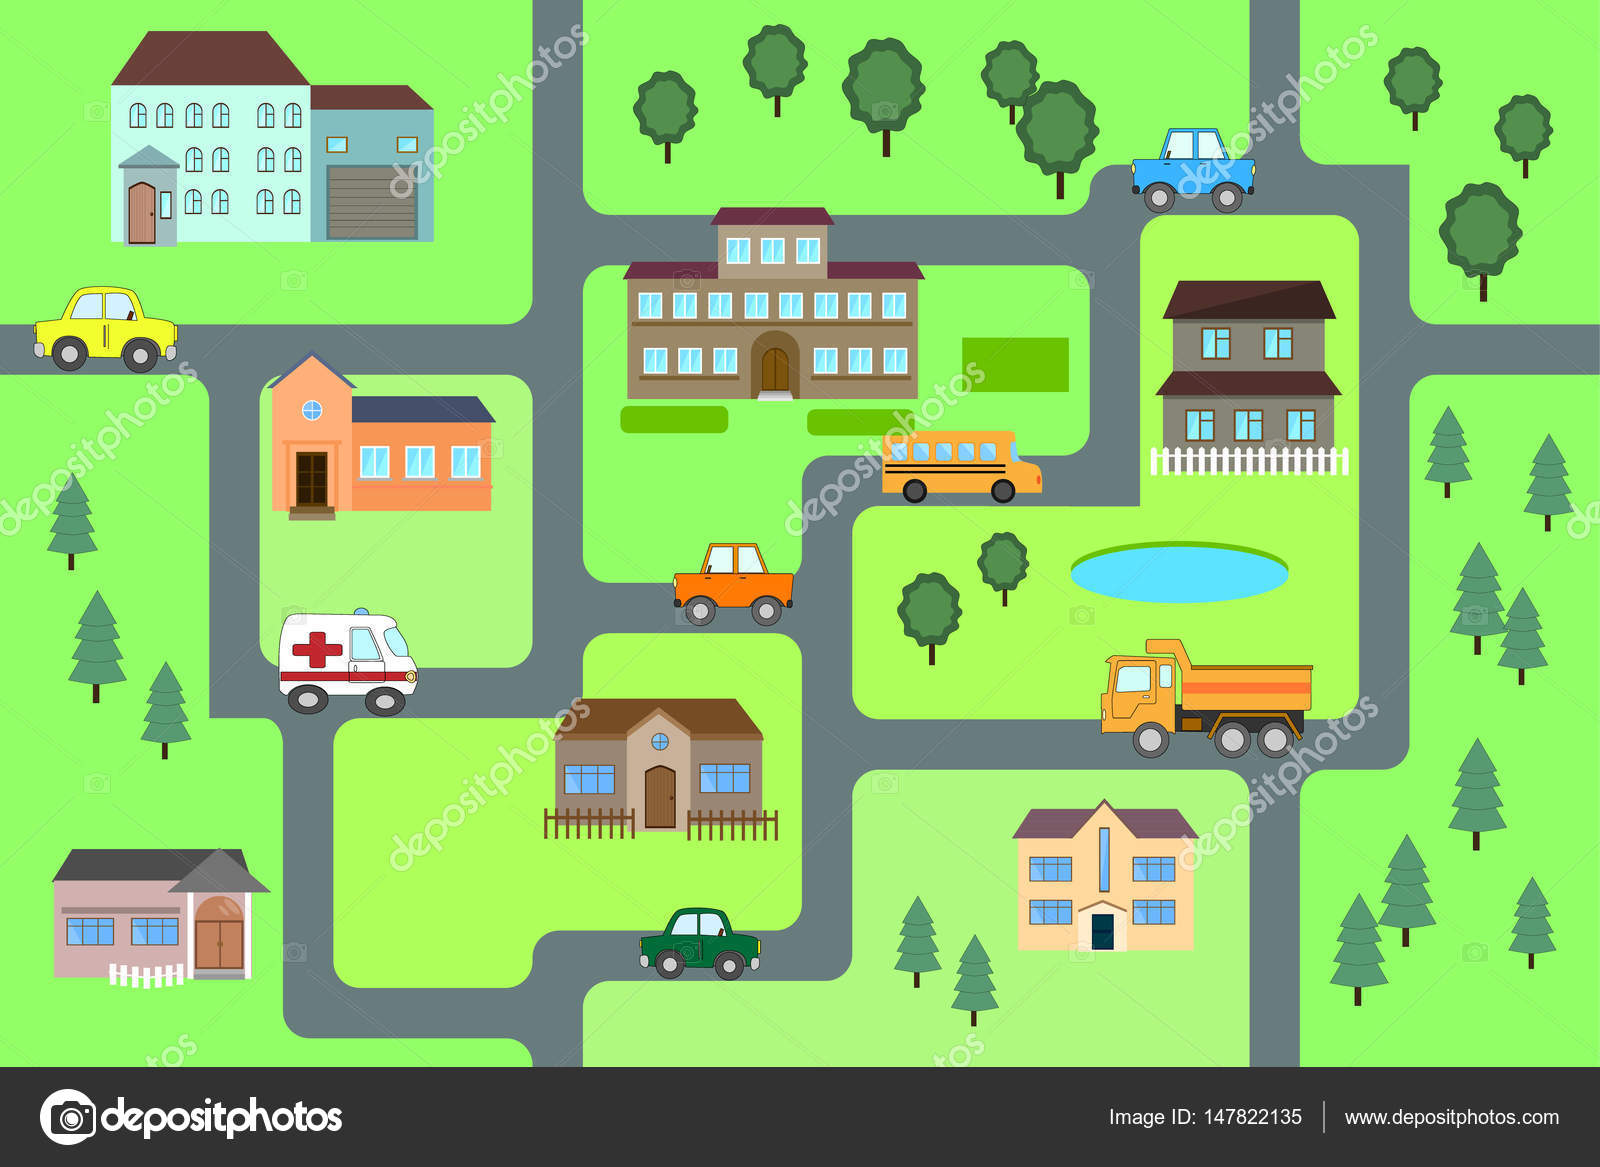 Images: cartoon roads | Cartoon map seamless pattern. (roads ... on house dimensions, house model, jordan map, alberta map, ms map, map of new jersey, manchester map, google map uk, location map, house hat, a map of the world, house burglar, house design, greek map, md map, map of chicago, map of downtown, house diagram, house sketch, house floorplans, map dubai, dallas map, britain map, house plans, house film, house blueprints, house transformation, map of michigan, house bird's eye view, house drawing, house construction, nz map, house highlights, house by road, house from street, house that, disney map, rivers map, mi map, house code,